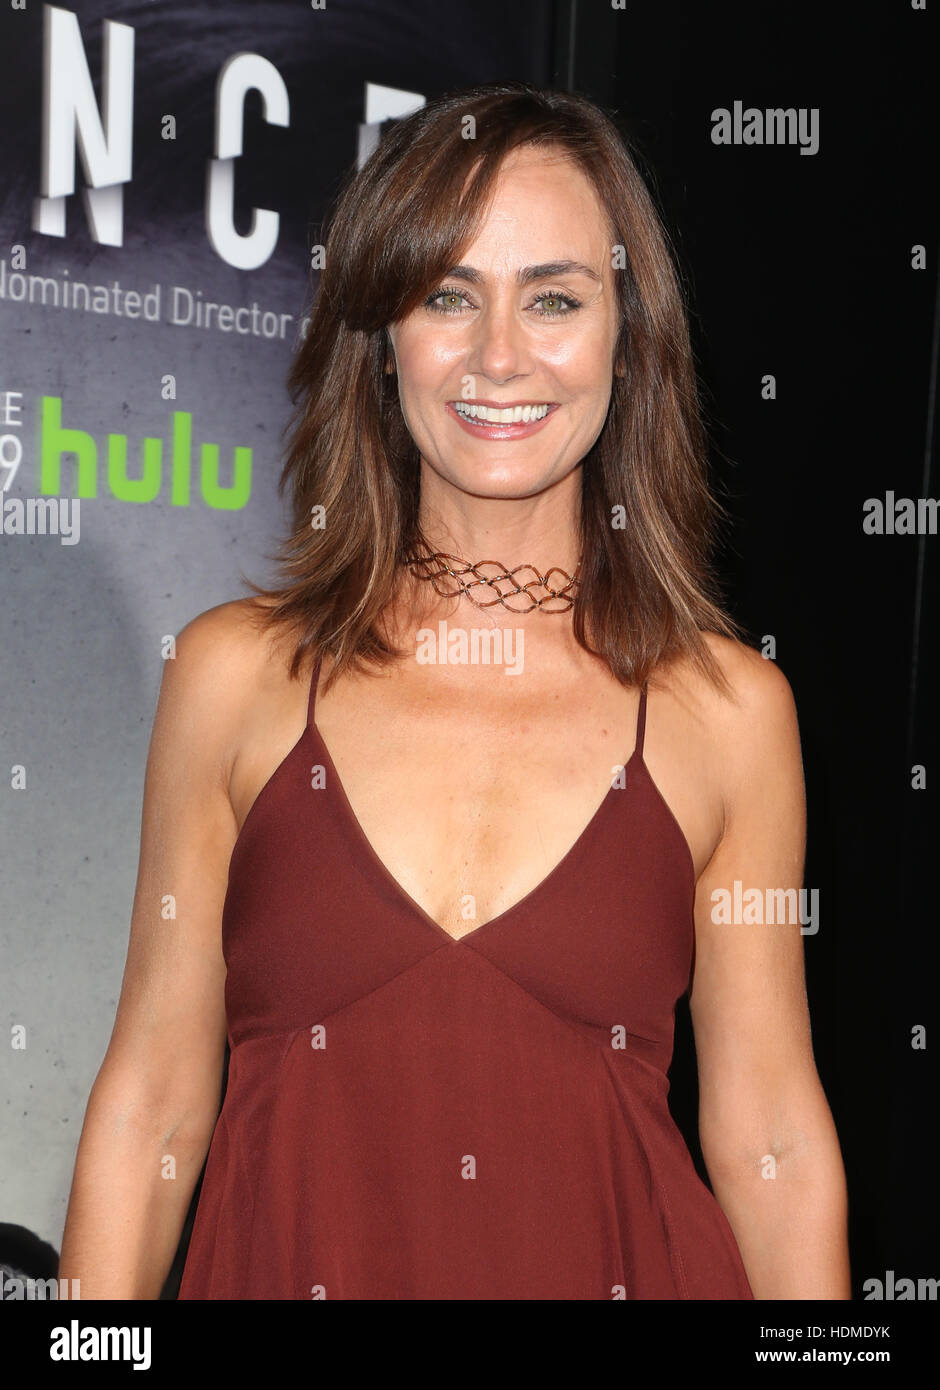 Celebrity Diane Farr naked (81 photo), Topless, Fappening, Boobs, butt 2018